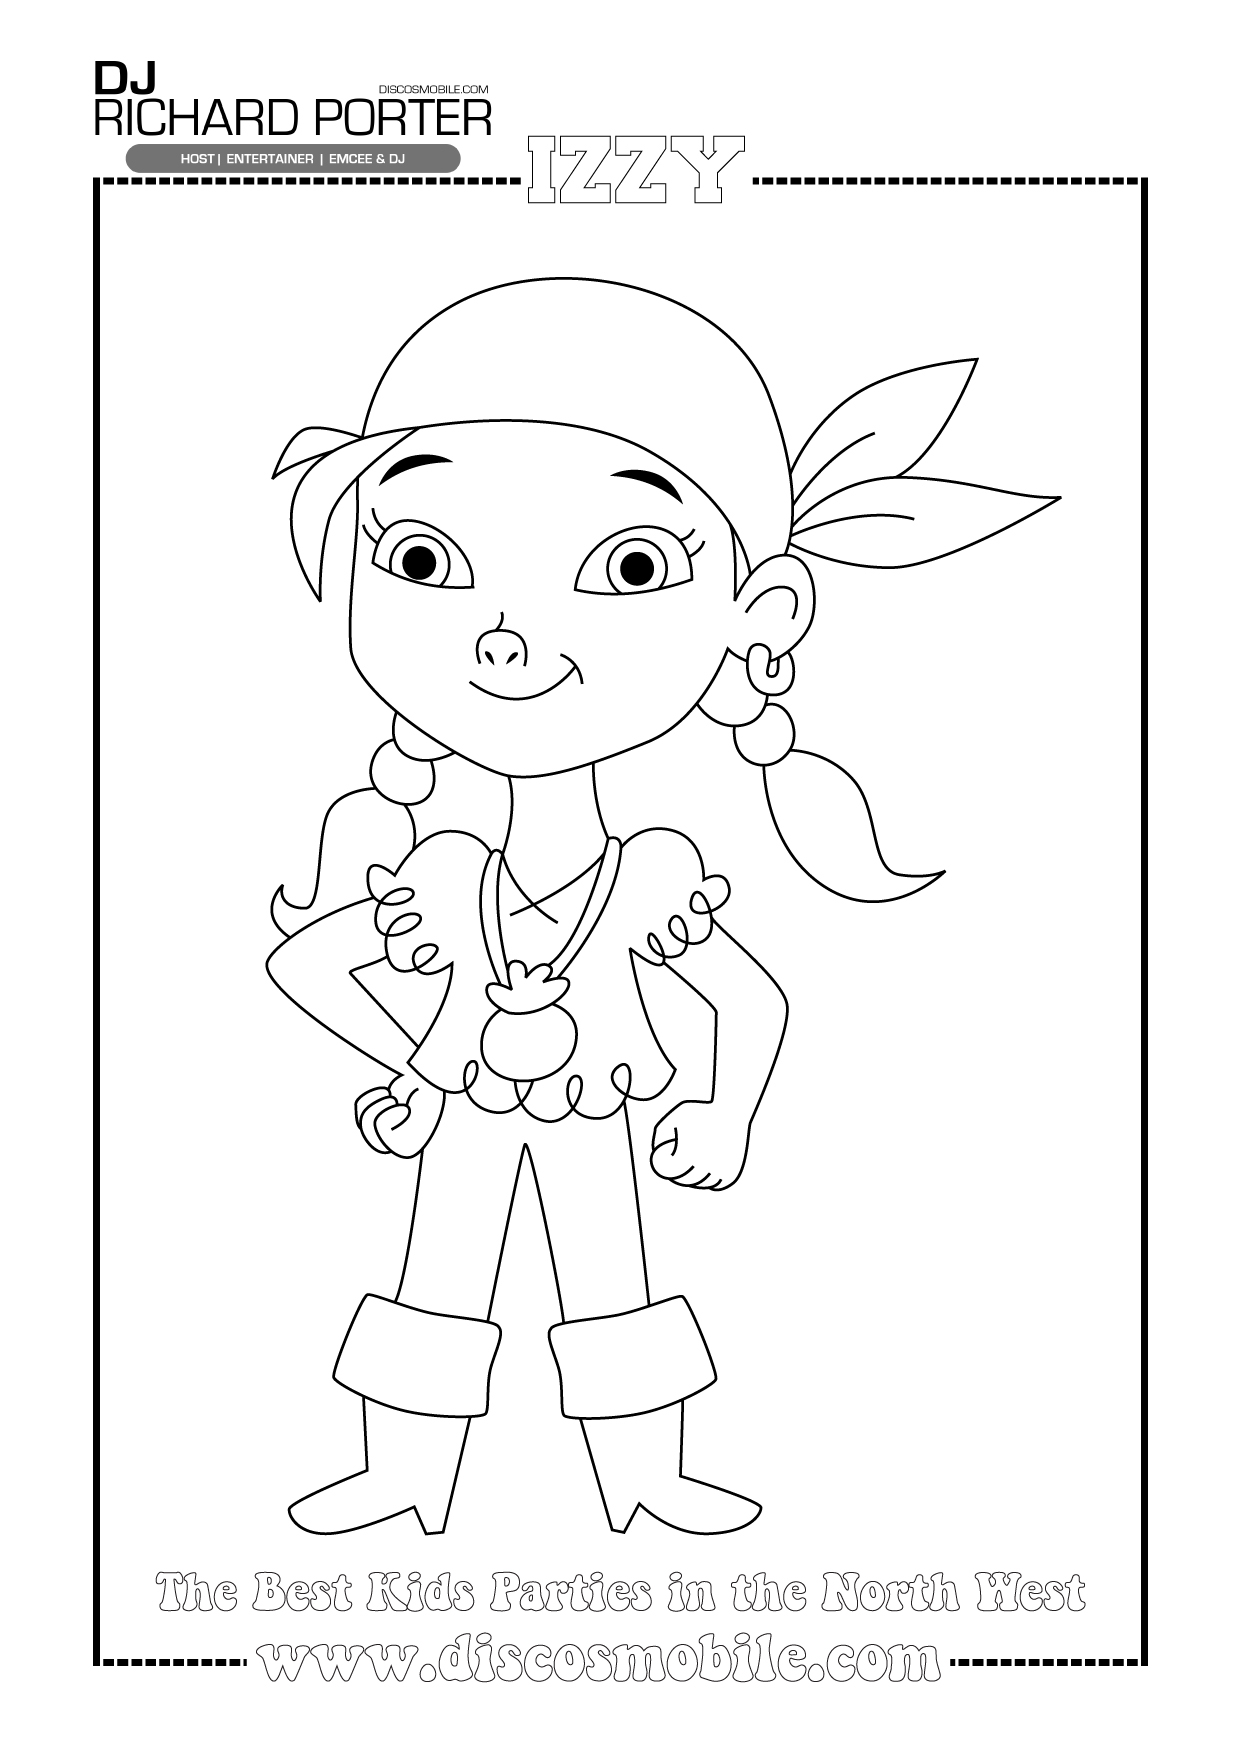 jake and the neverland pirates cartoon disney coloring pages and sheets for kids jake and the cartoon the neverland pirates jake and